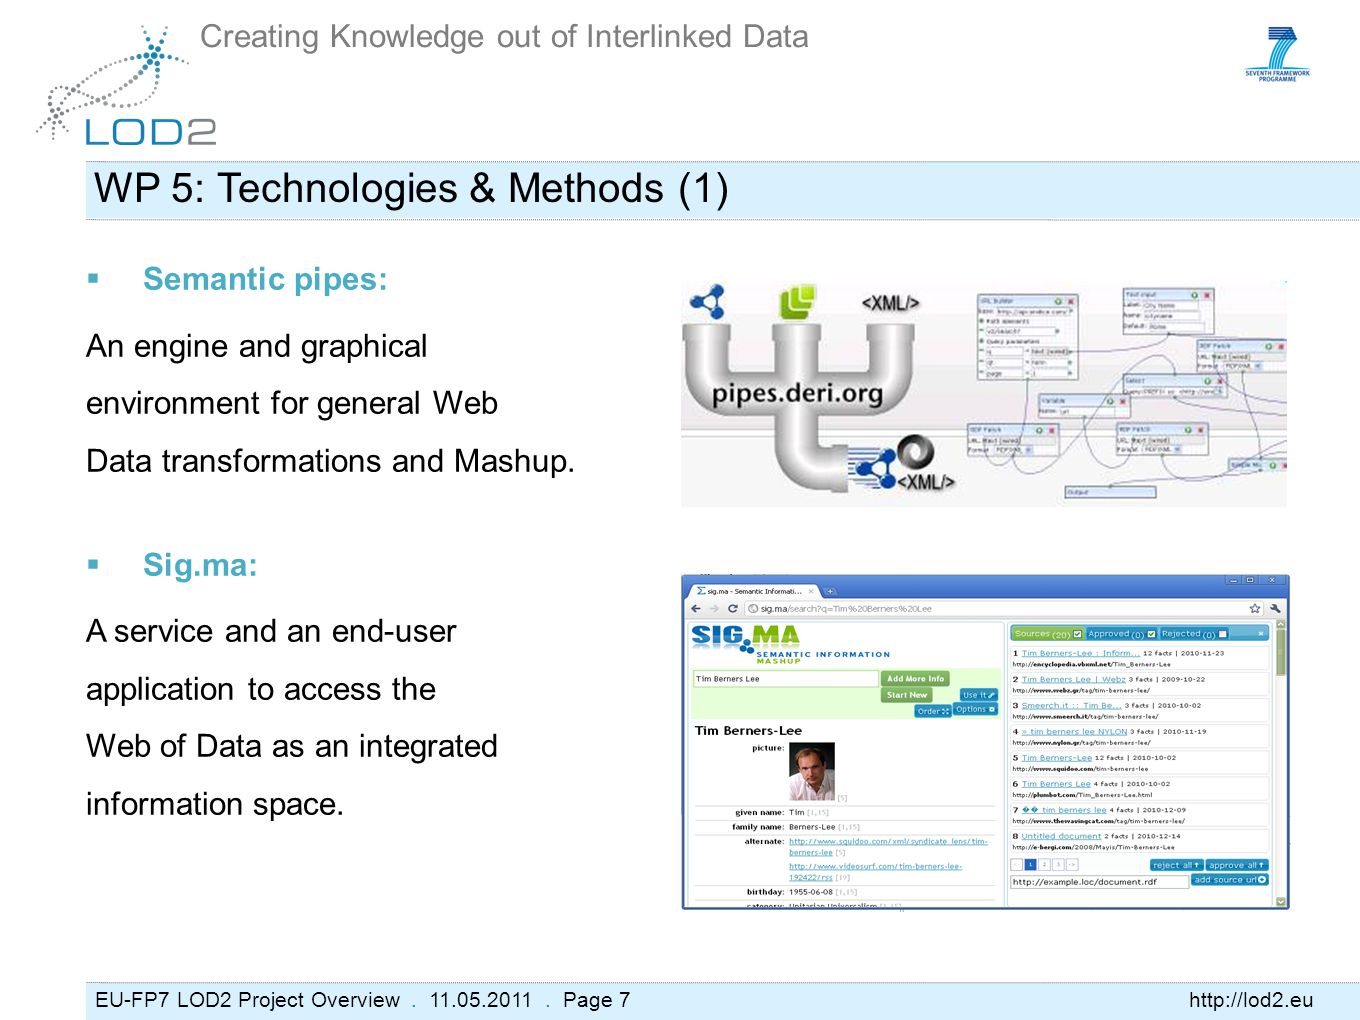 EU-FP7 LOD2 Project Overview. 11.05.2011.